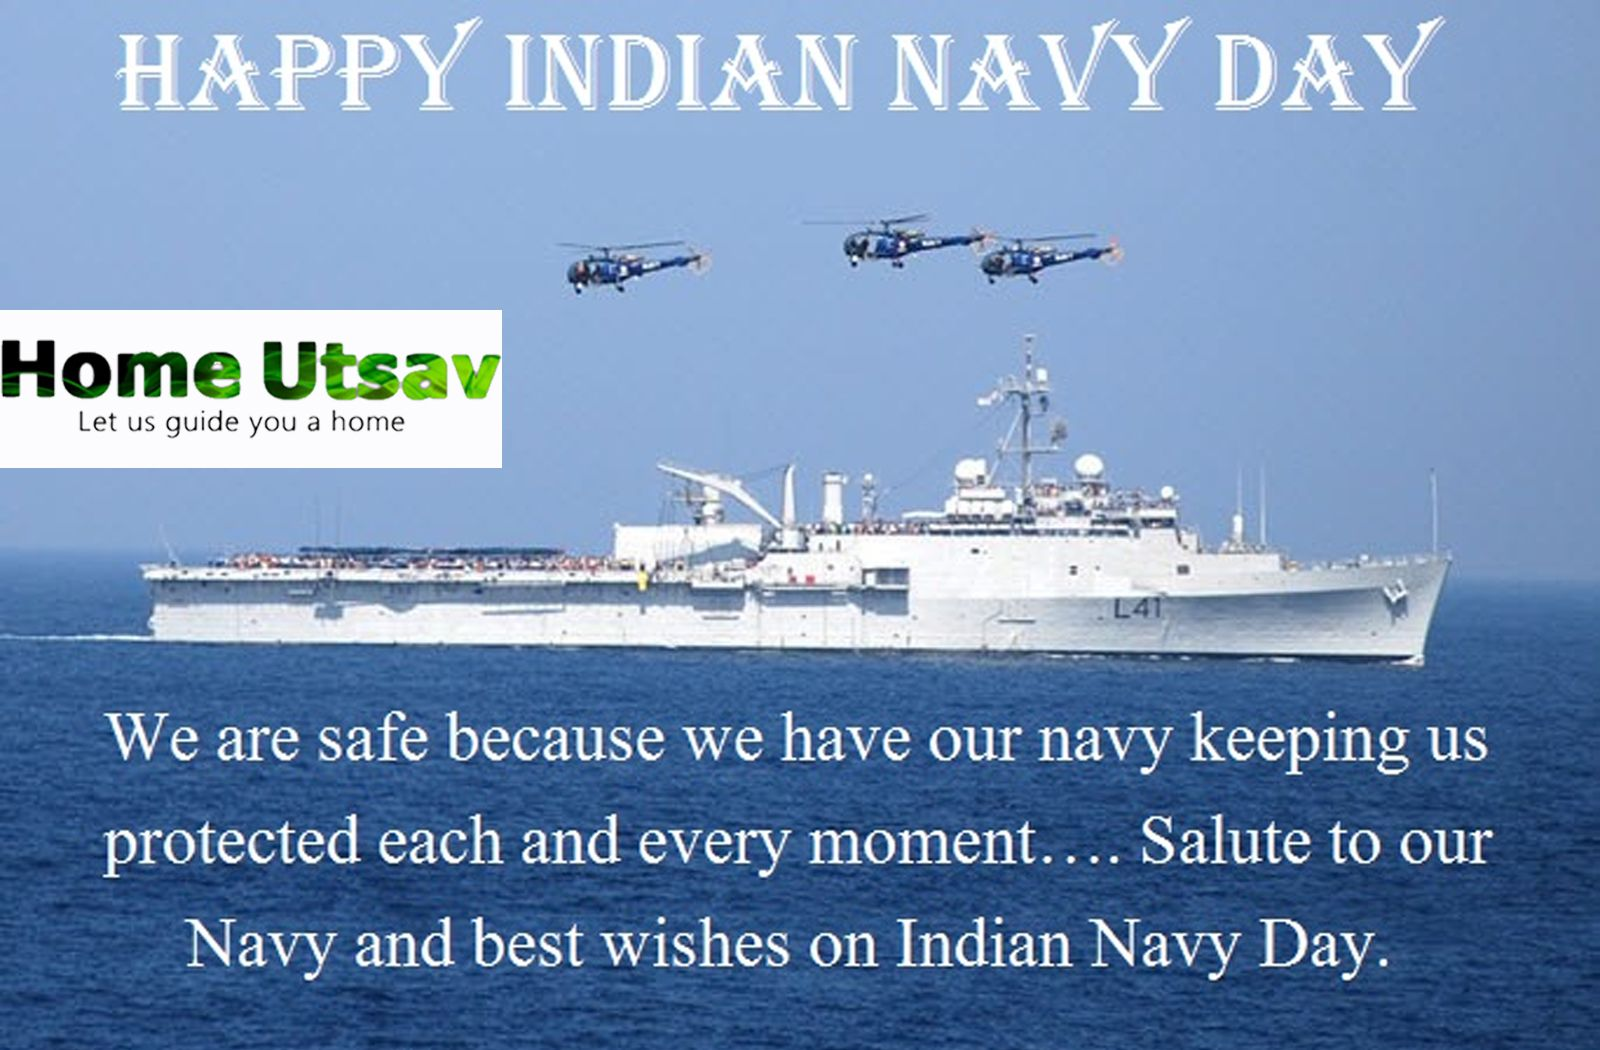 Let Us Celebrate With Pride The Service Rendered To The Nation By Our Fearless Selfless Warriors The Men In White The Indian Navy Day Navy Day Indian Navy